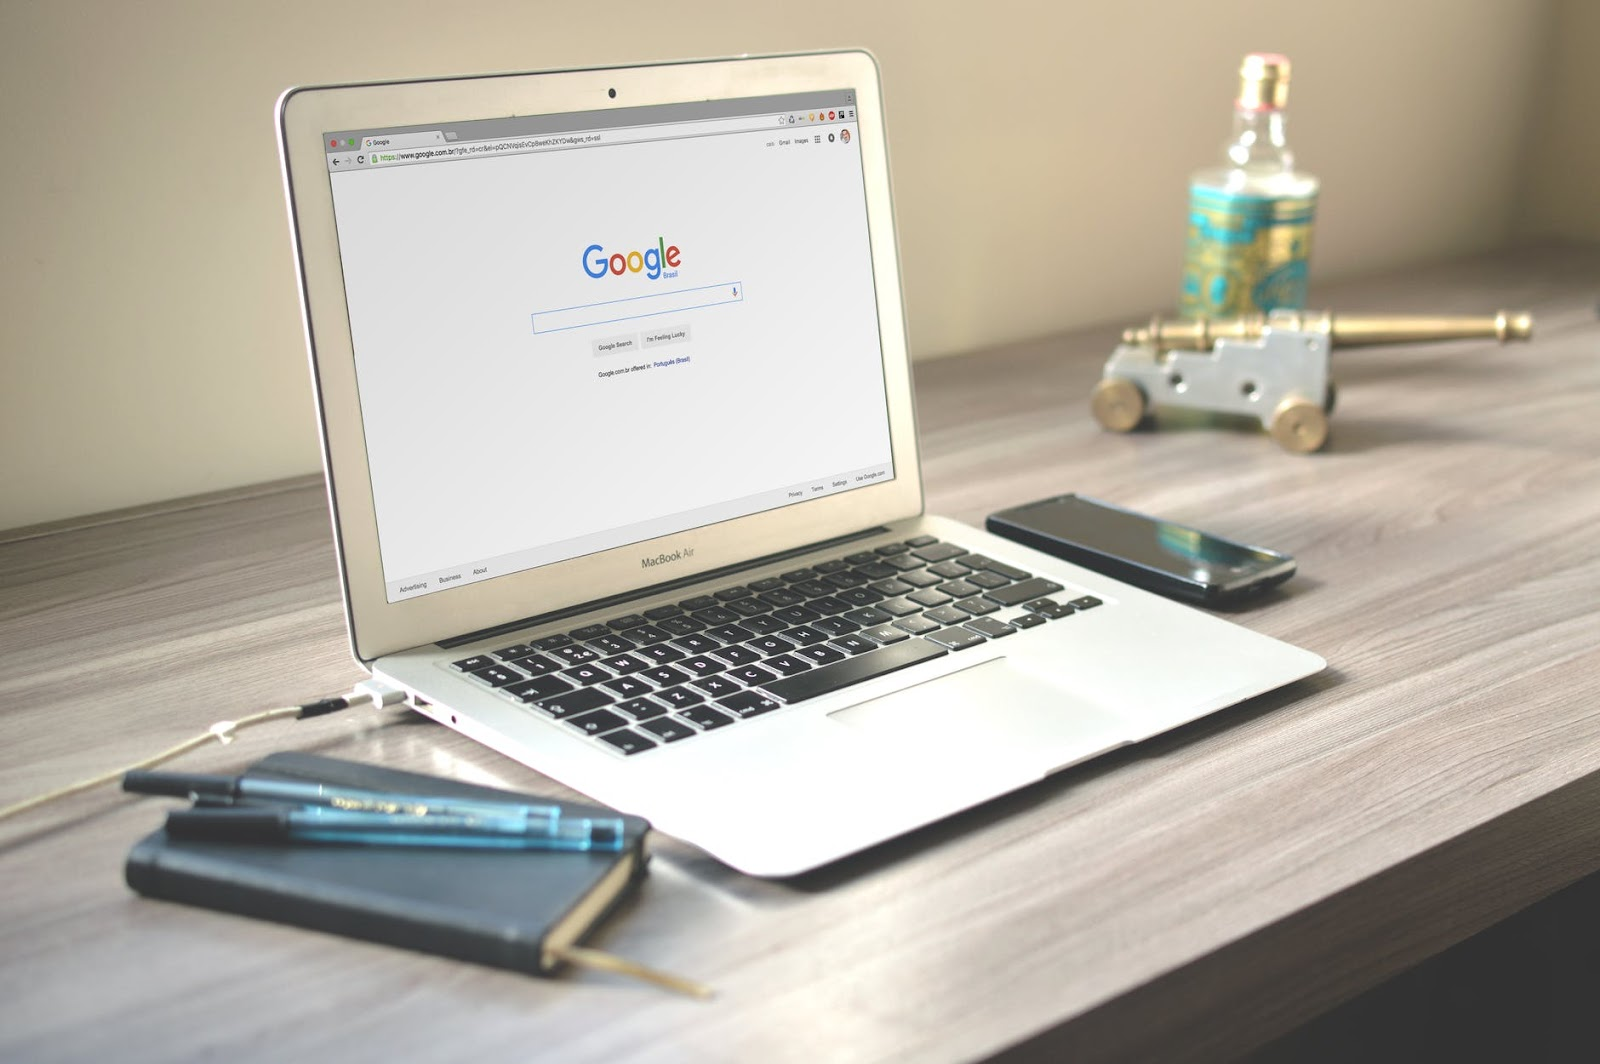 a silver laptop with google chrome  on the screen.